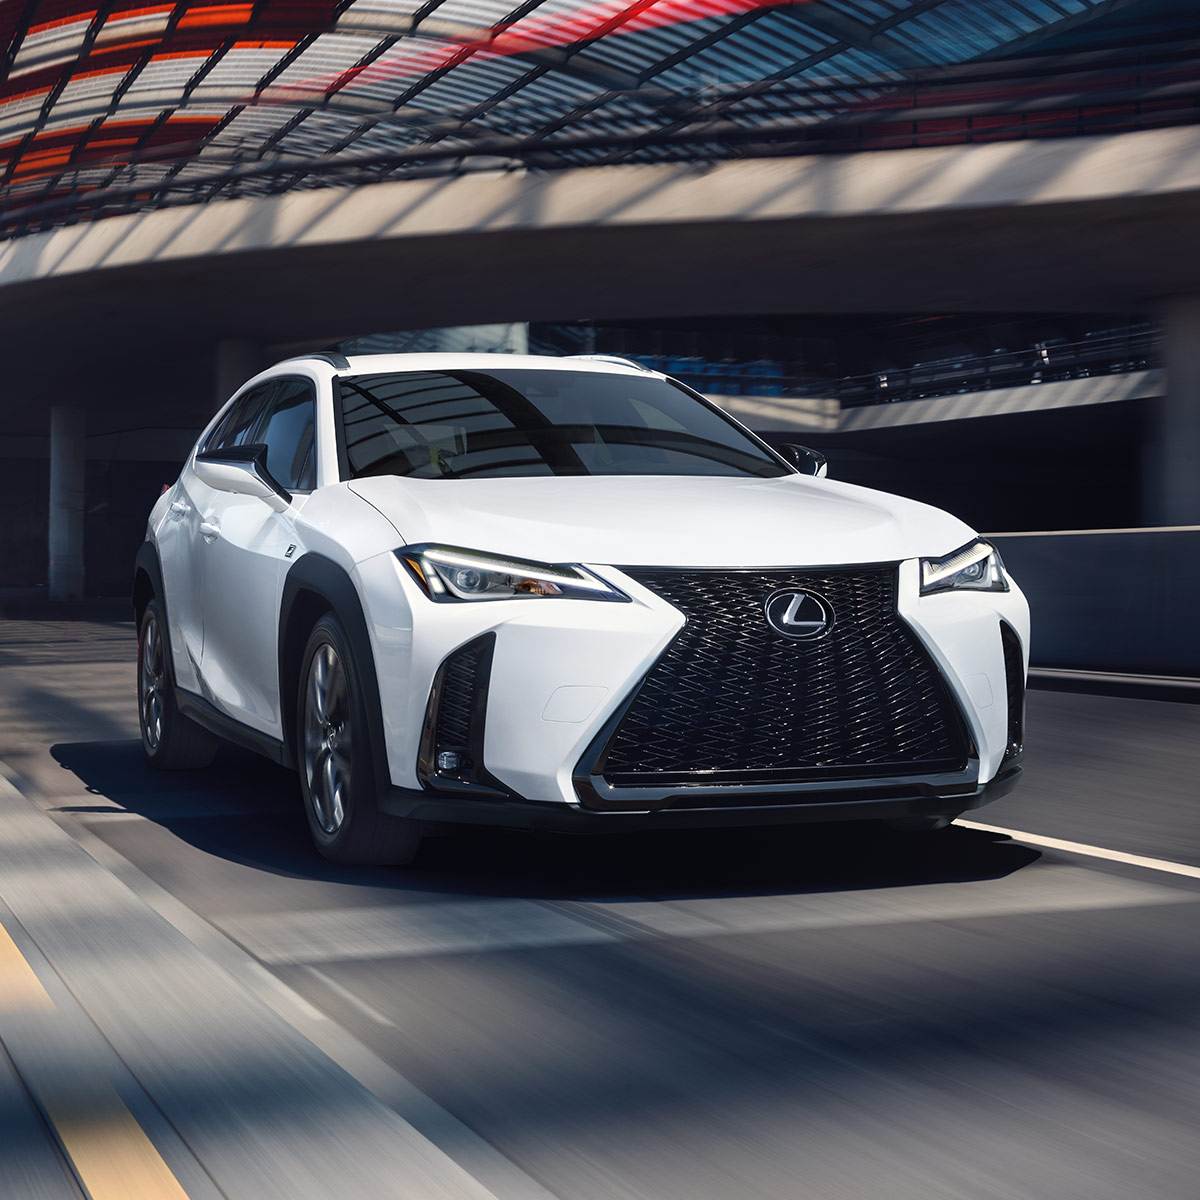 frontal profile of lexus ux suv in white color driving under a tunnel at daytime